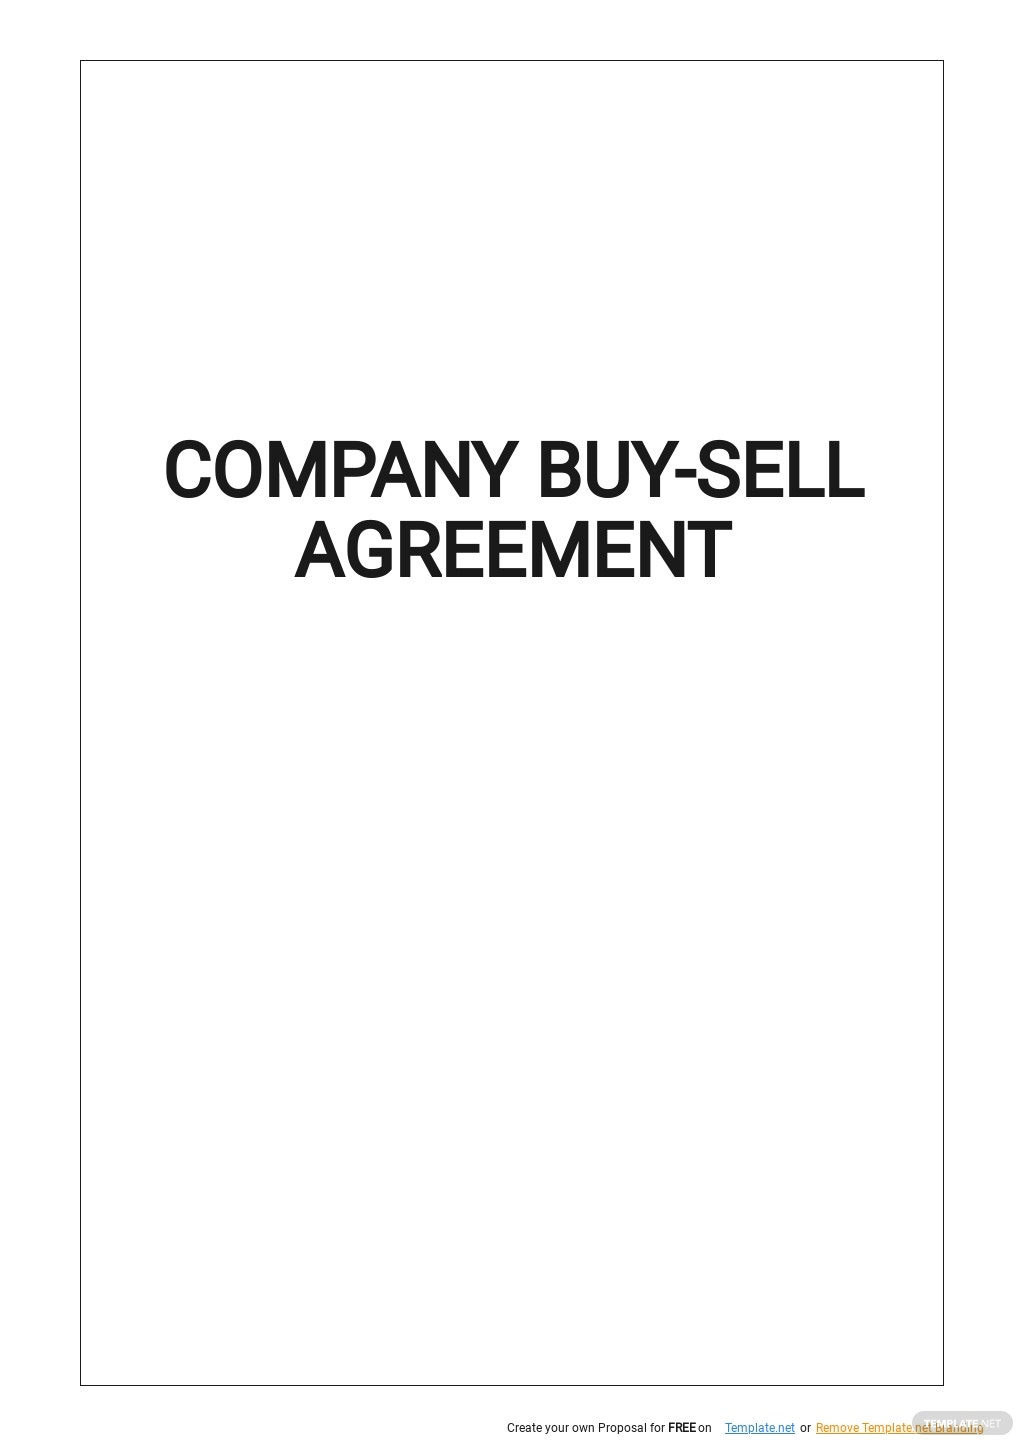 Company Buy Sell Agreement Template.jpe